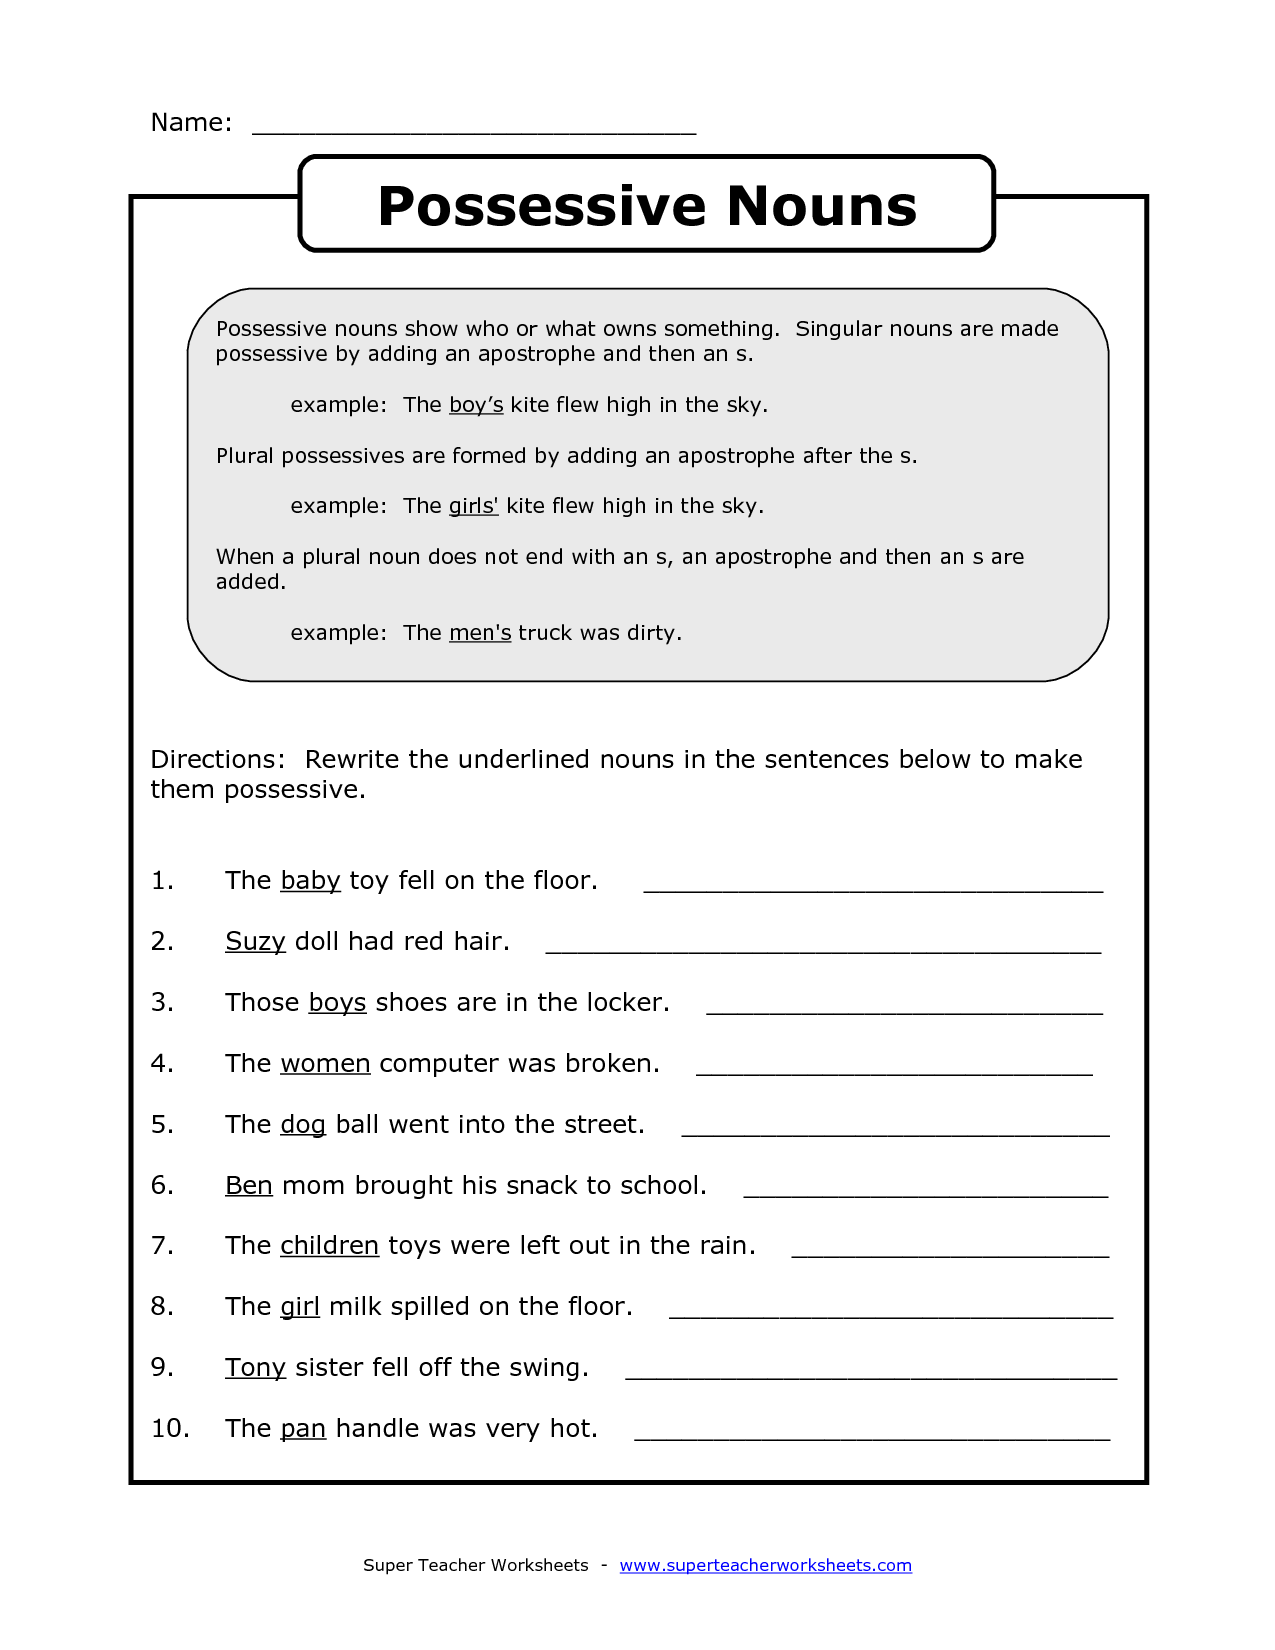 worksheet Plural Possessive Nouns Worksheets 1000 images about possessive nouns on pinterest literacy worksheets and grade 2